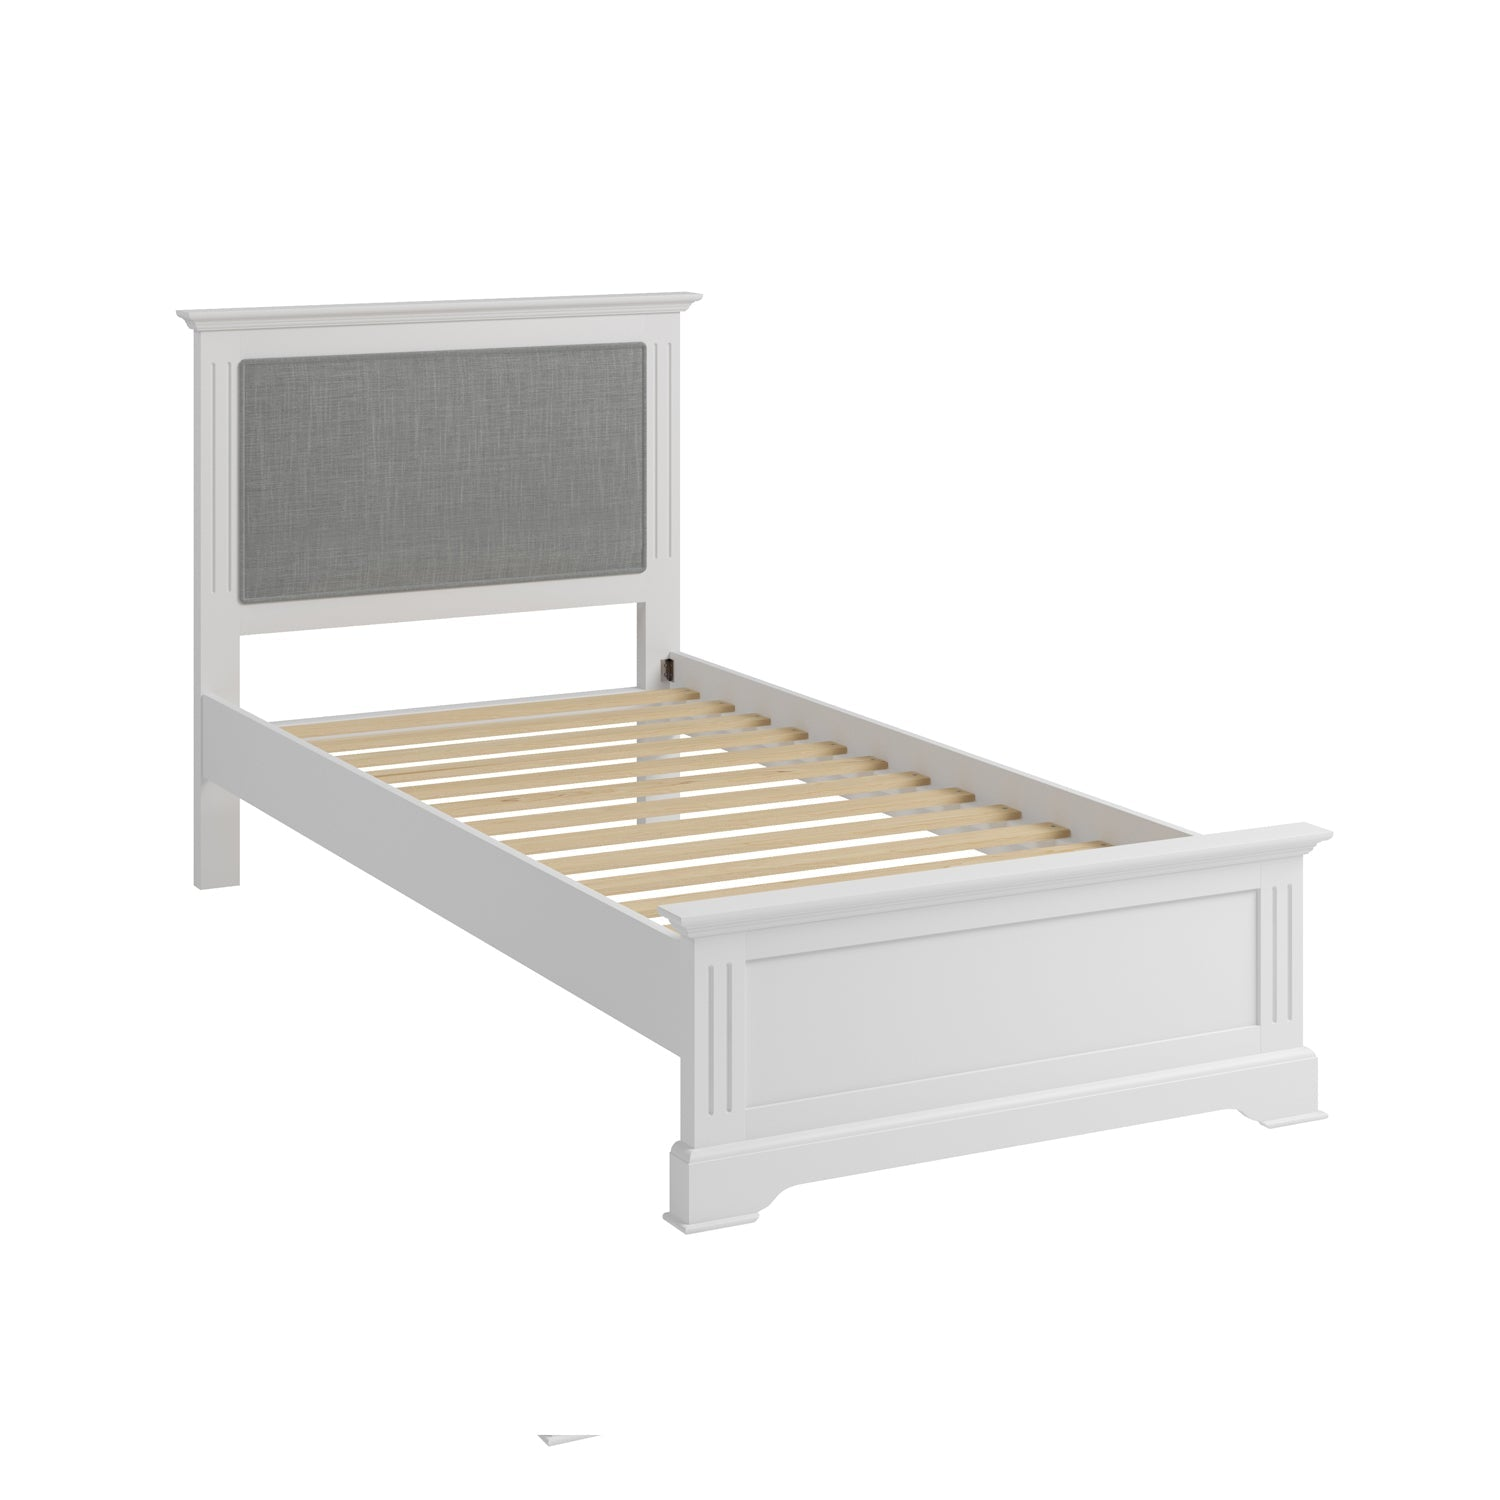 Billingford White Bed